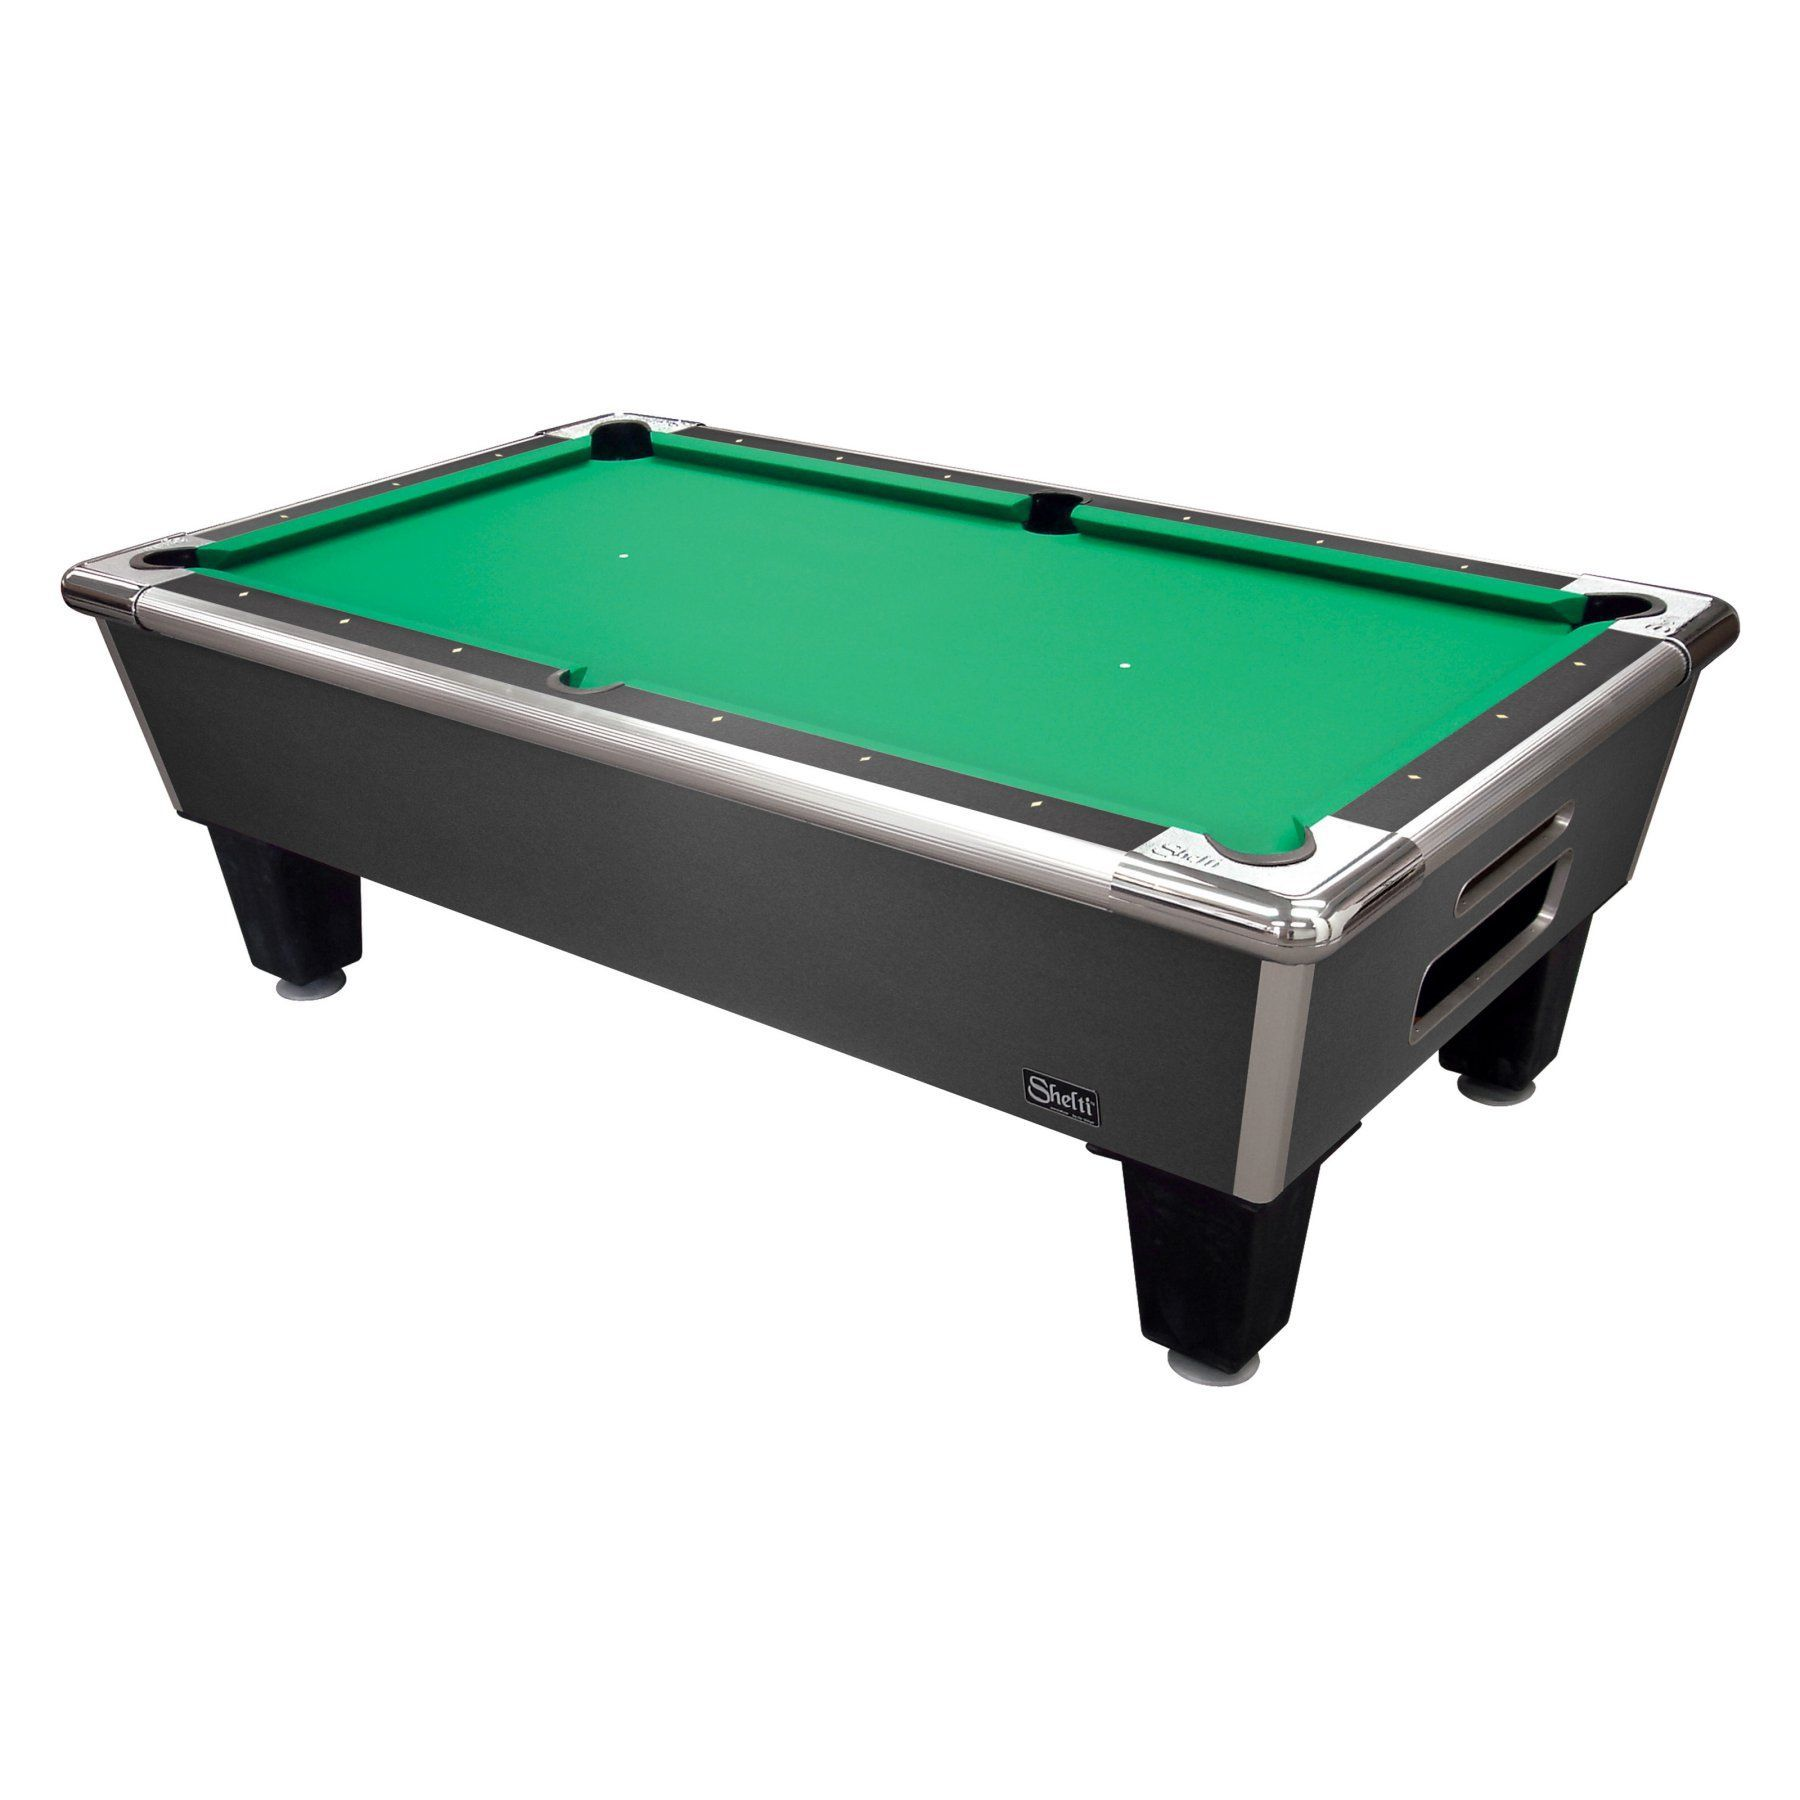 Taking Coin Out Of Coin Operated Pool Tables Increase Earnings - Pool table movers knoxville tn